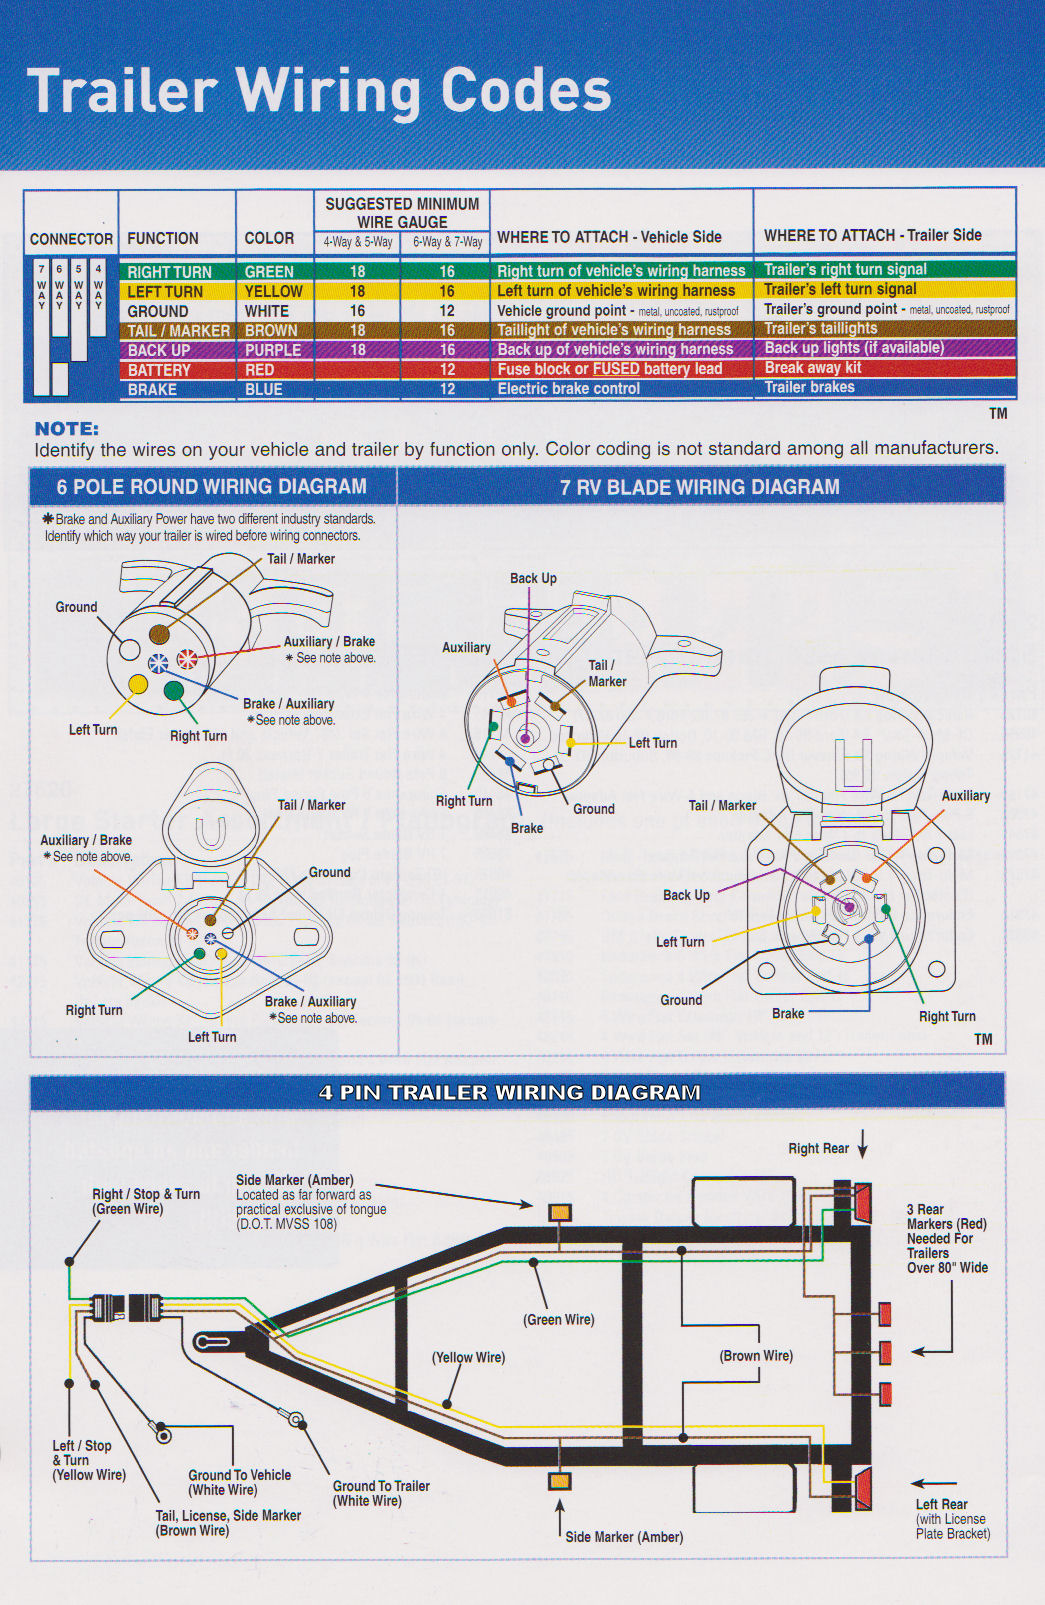 Wells Cargo Trailer Ke Wiring Diagram. . Wiring Diagram on